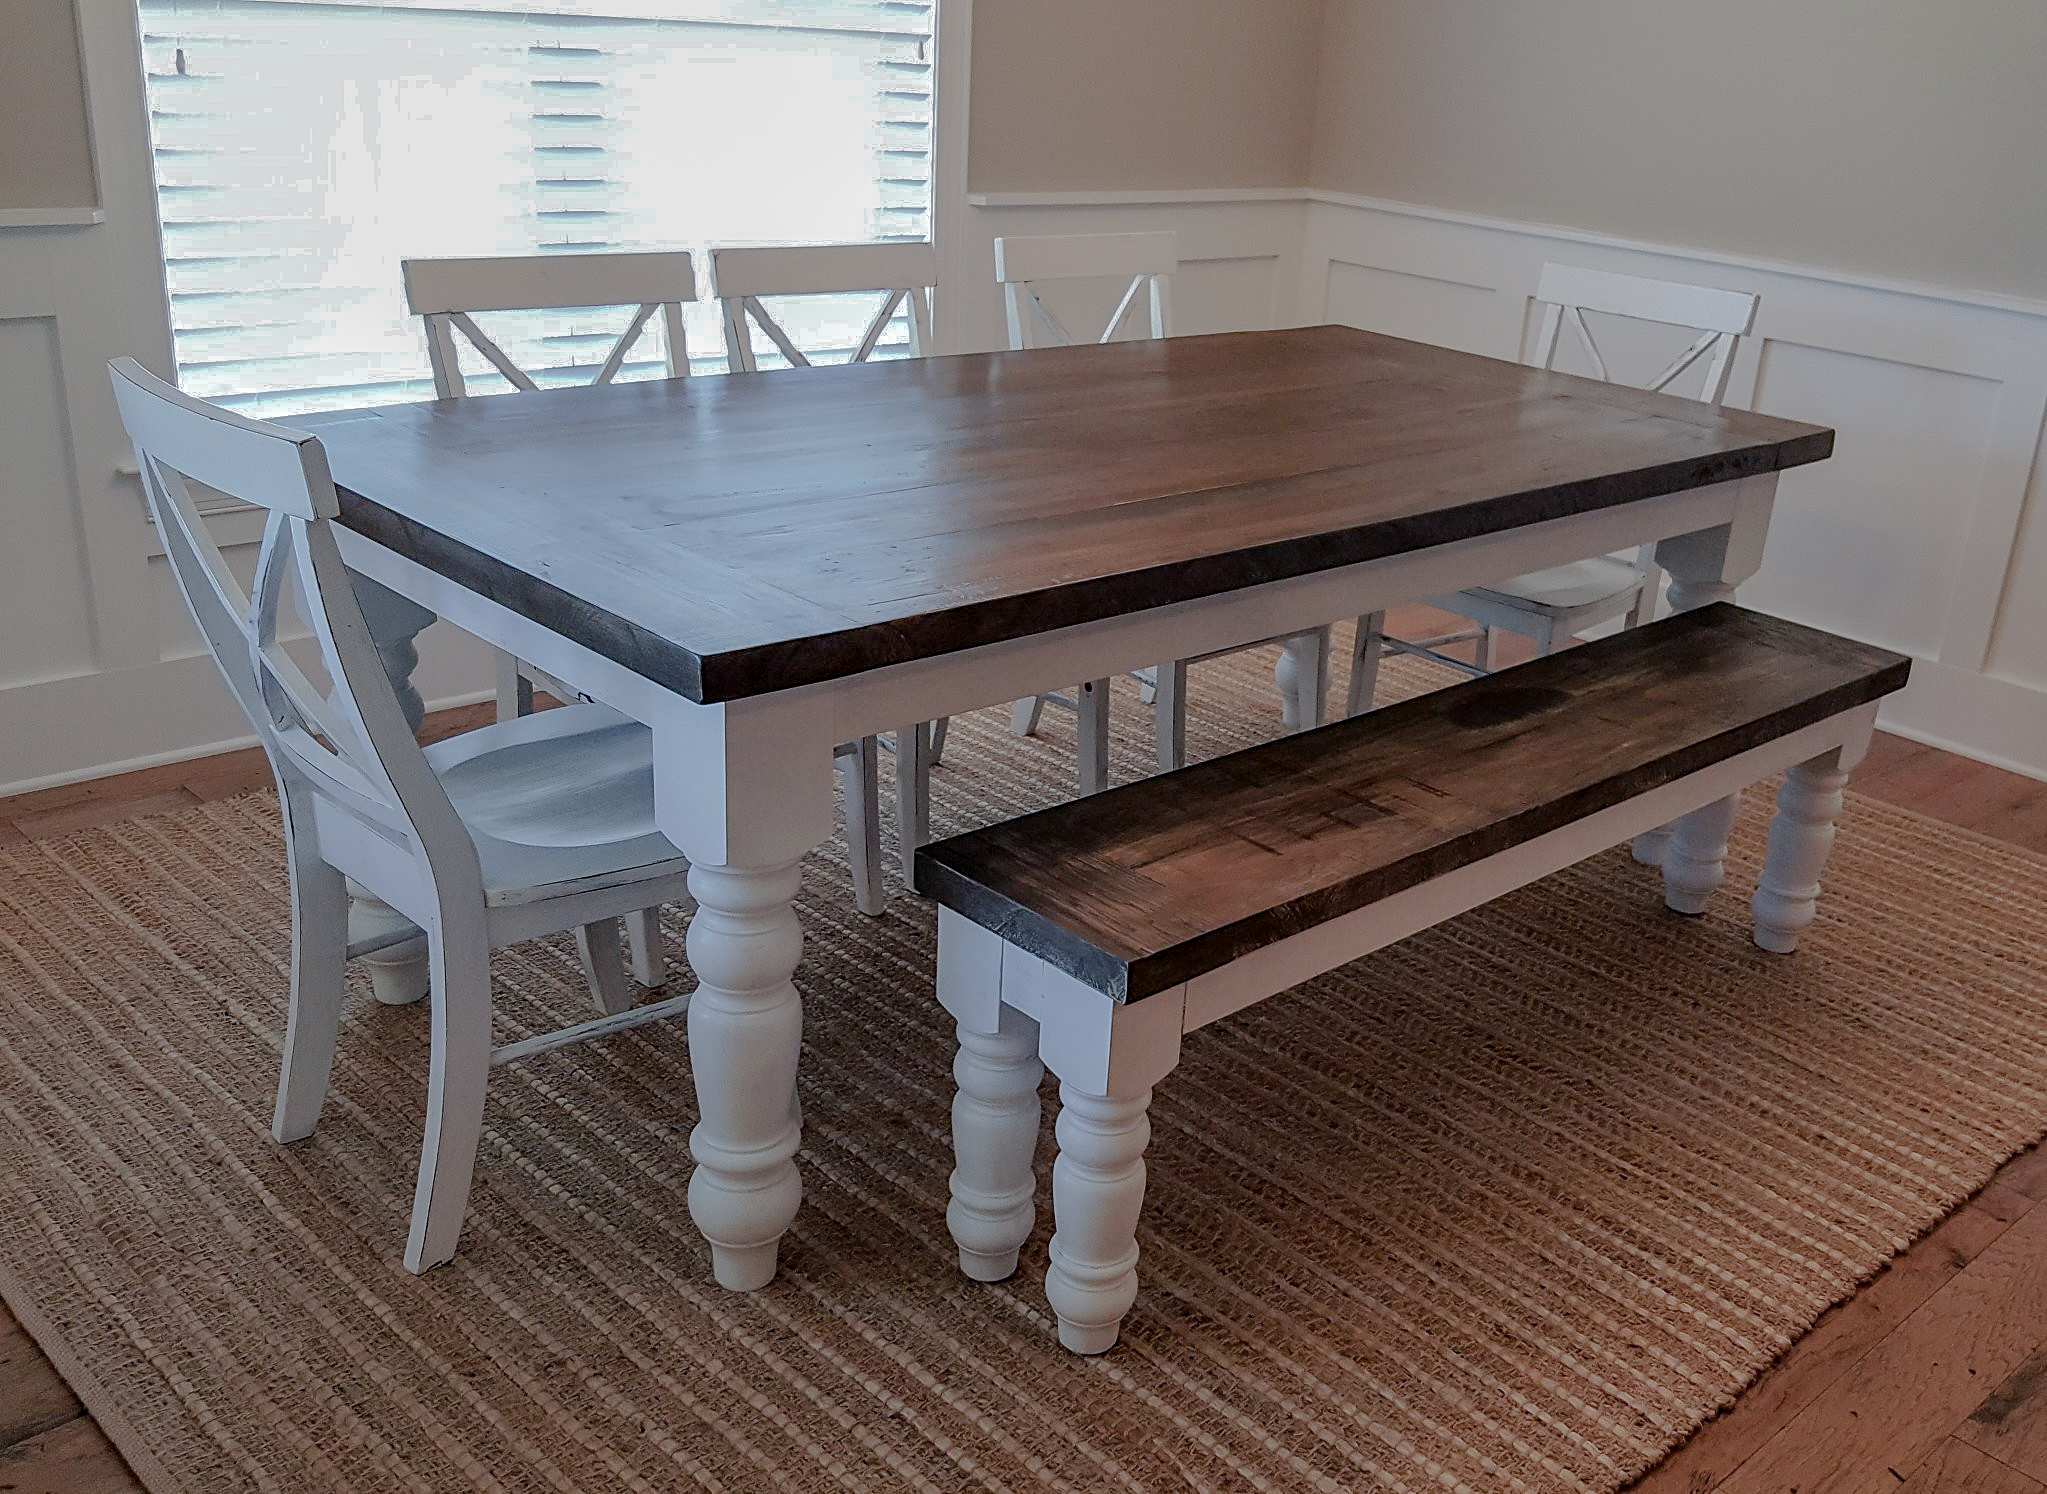 Hickory with Walnut Stain and Satin Finish - White Painted Base